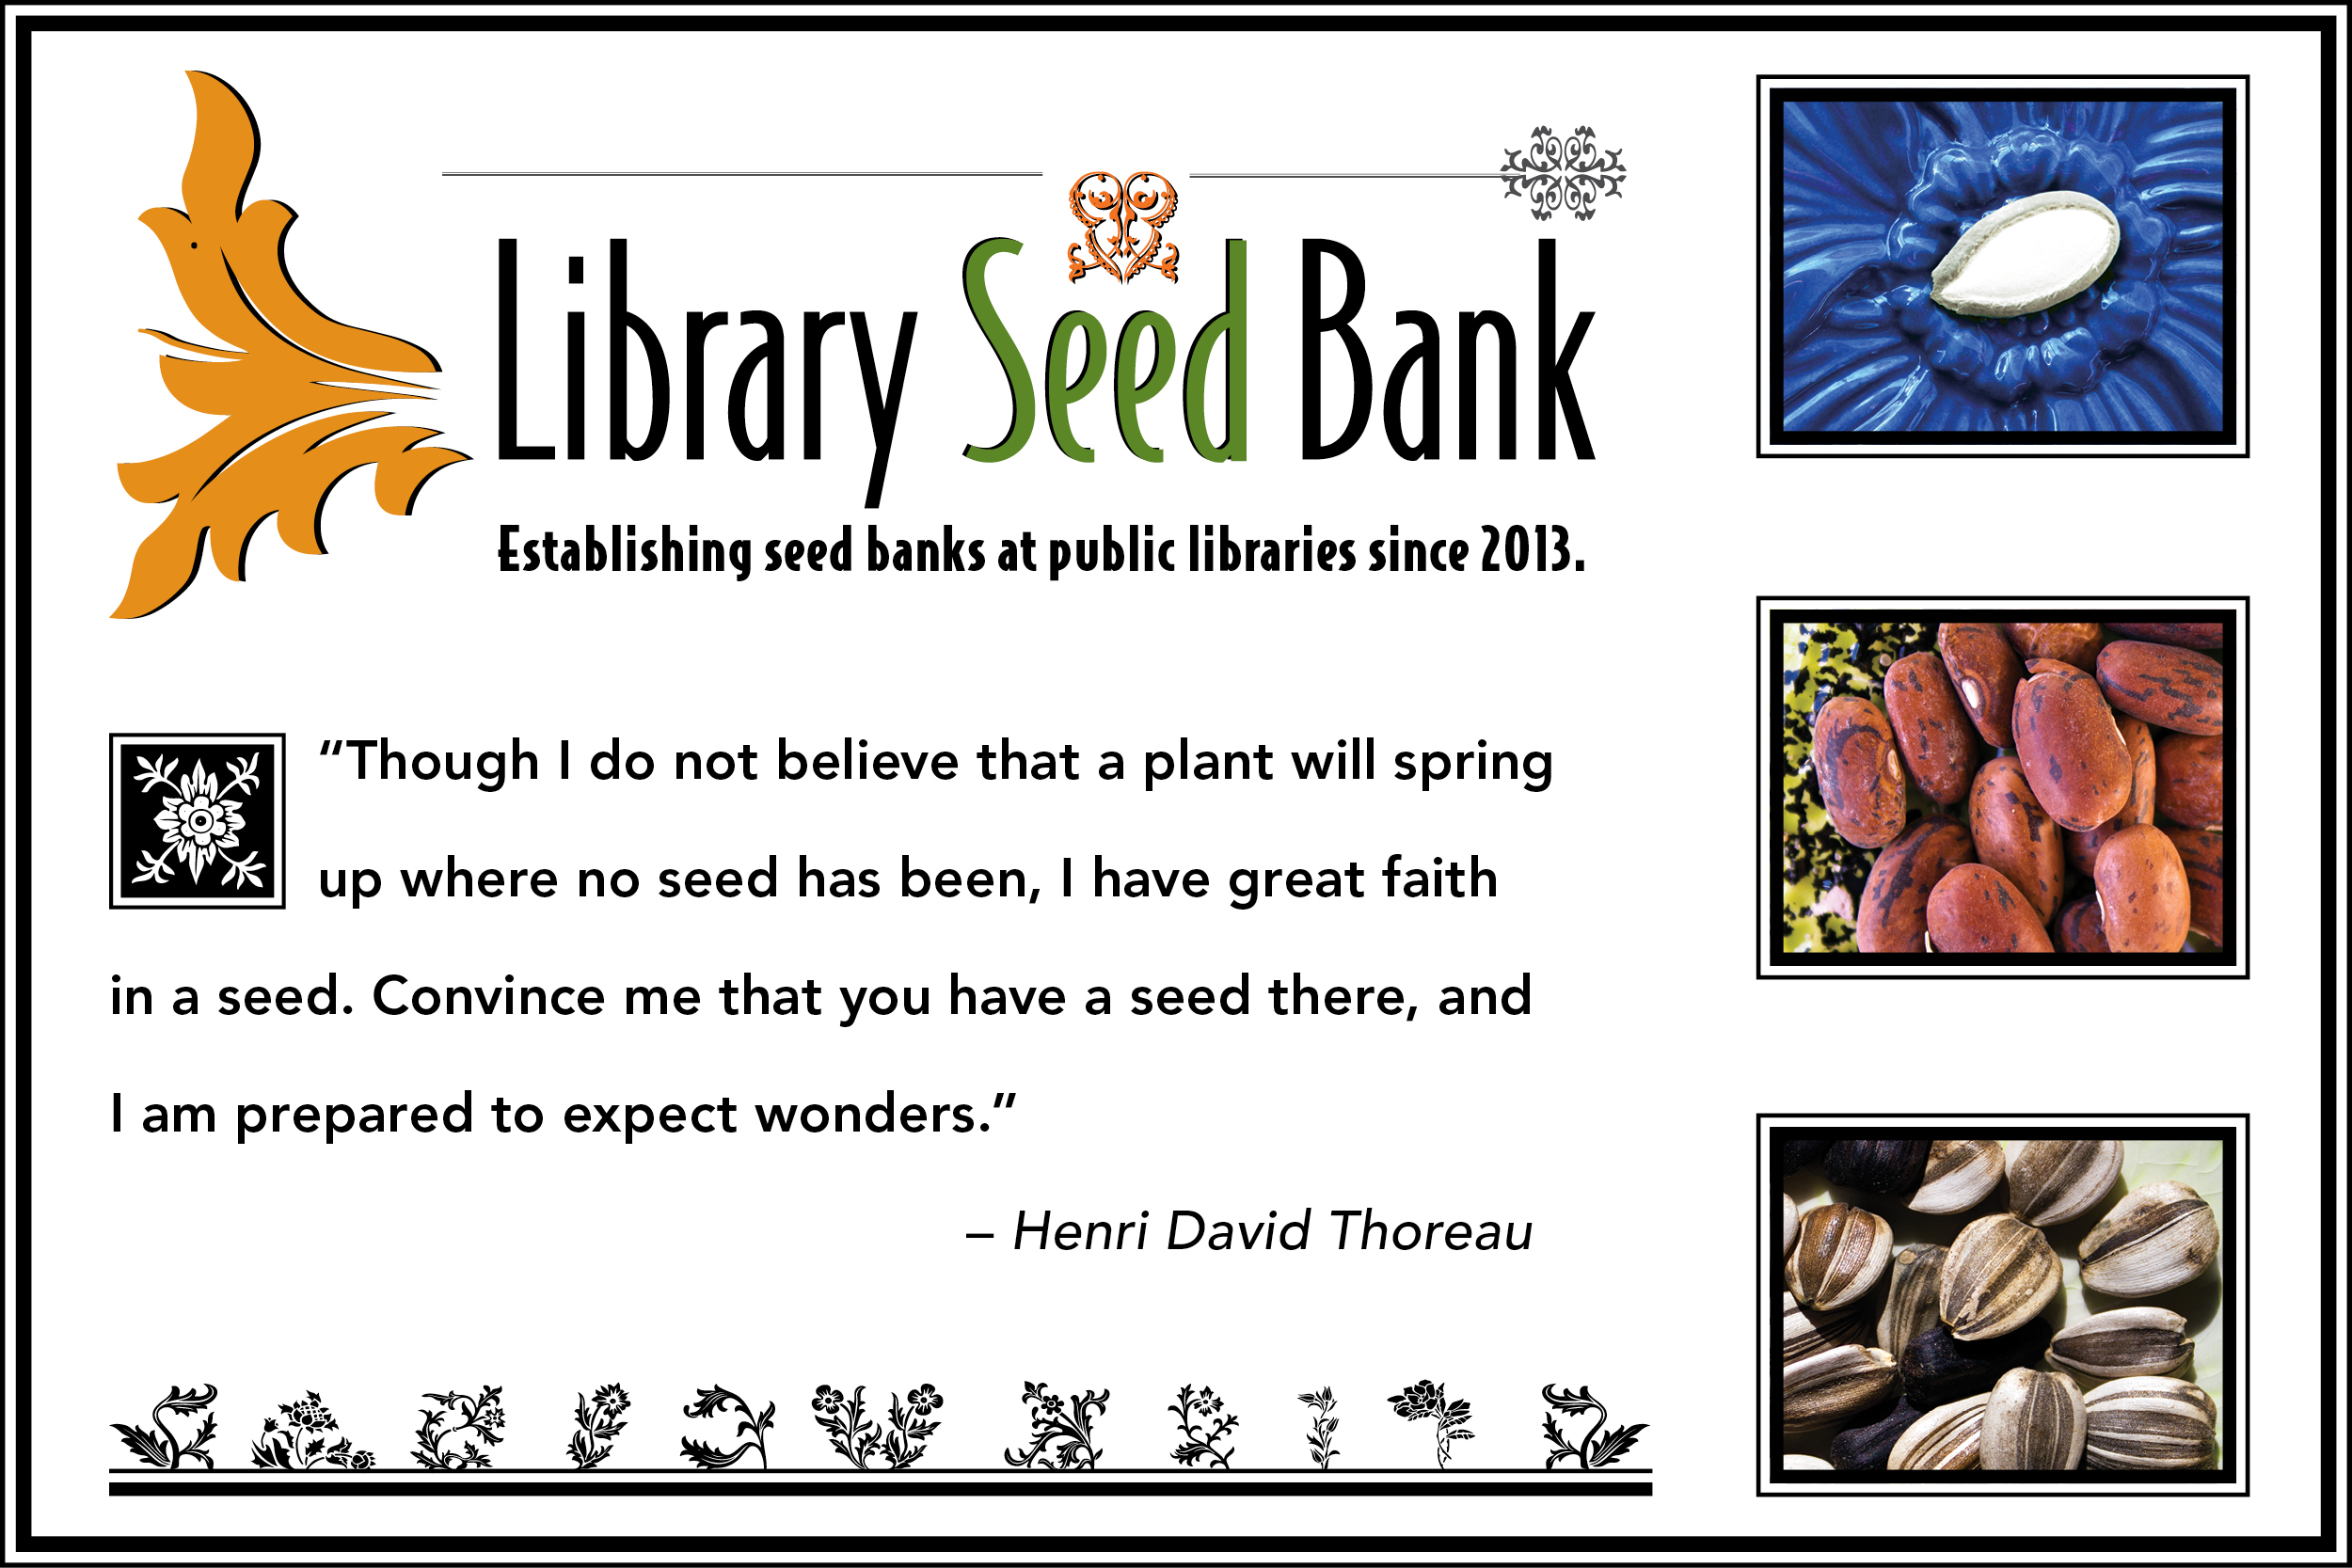 graphic for the Library Seed Bank project